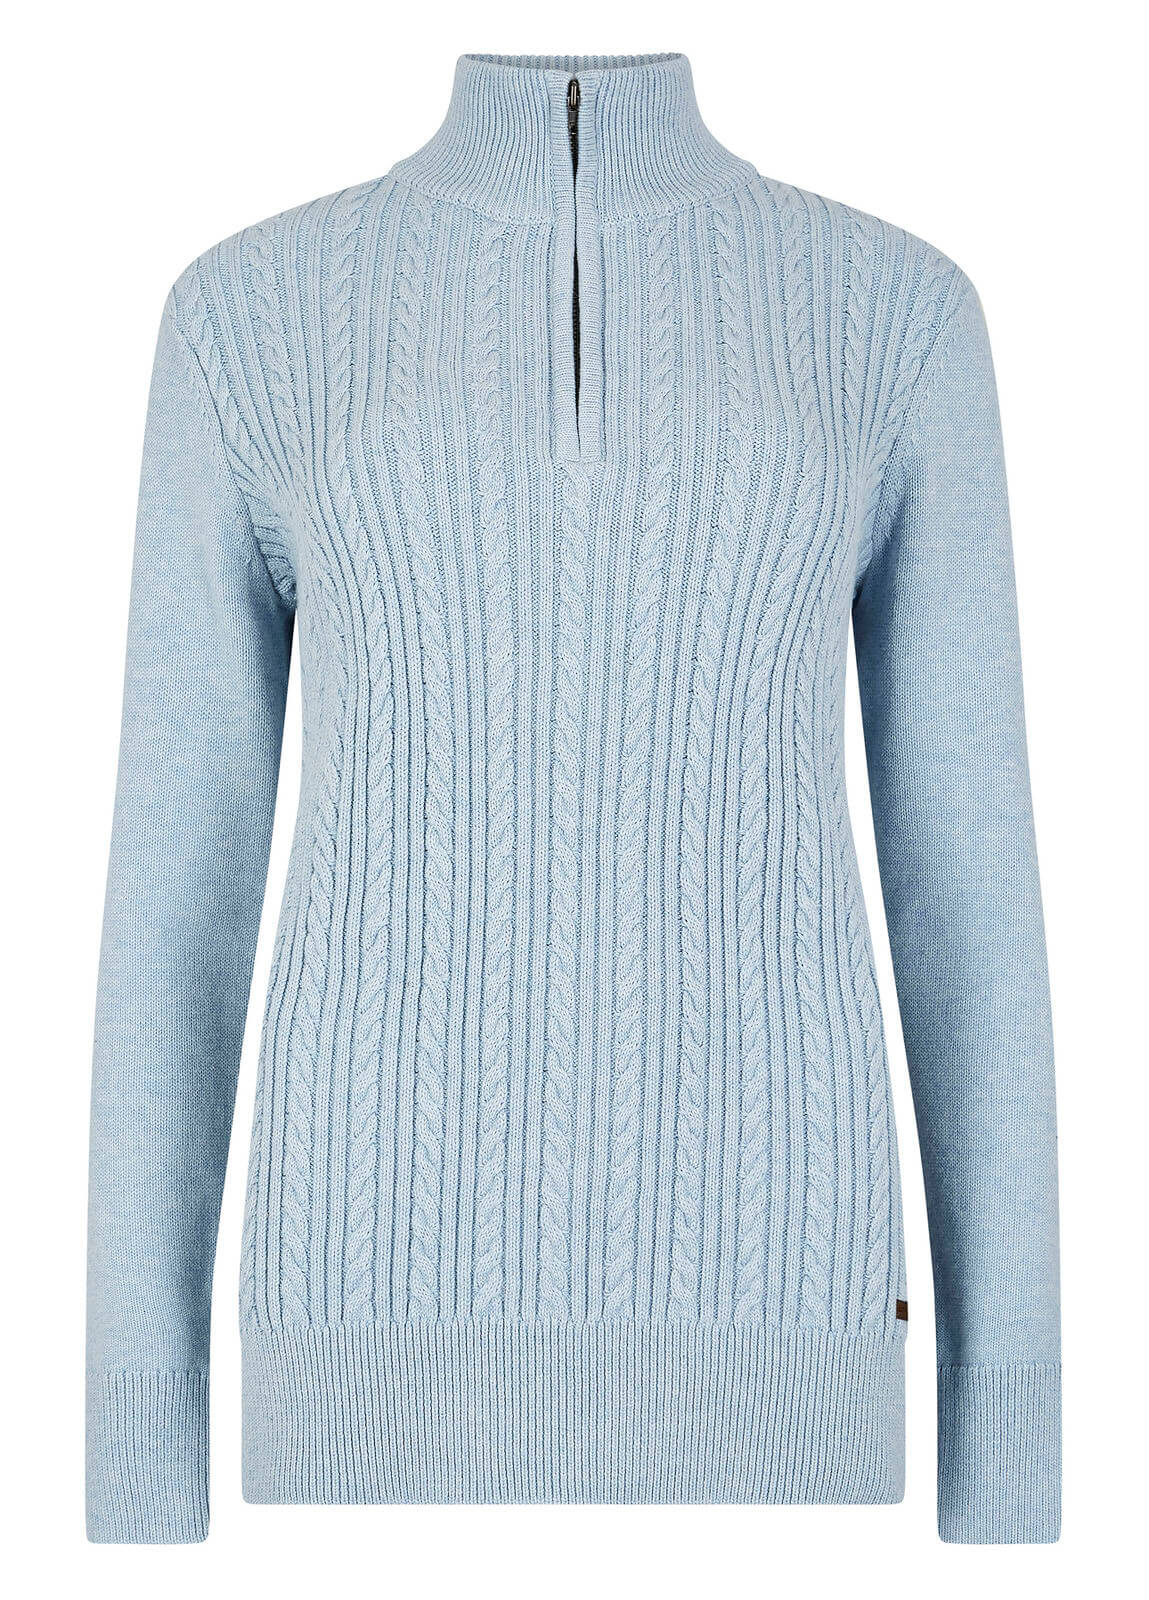 Garvey_Knitted_Sweater_Pale_Blue_Image_1